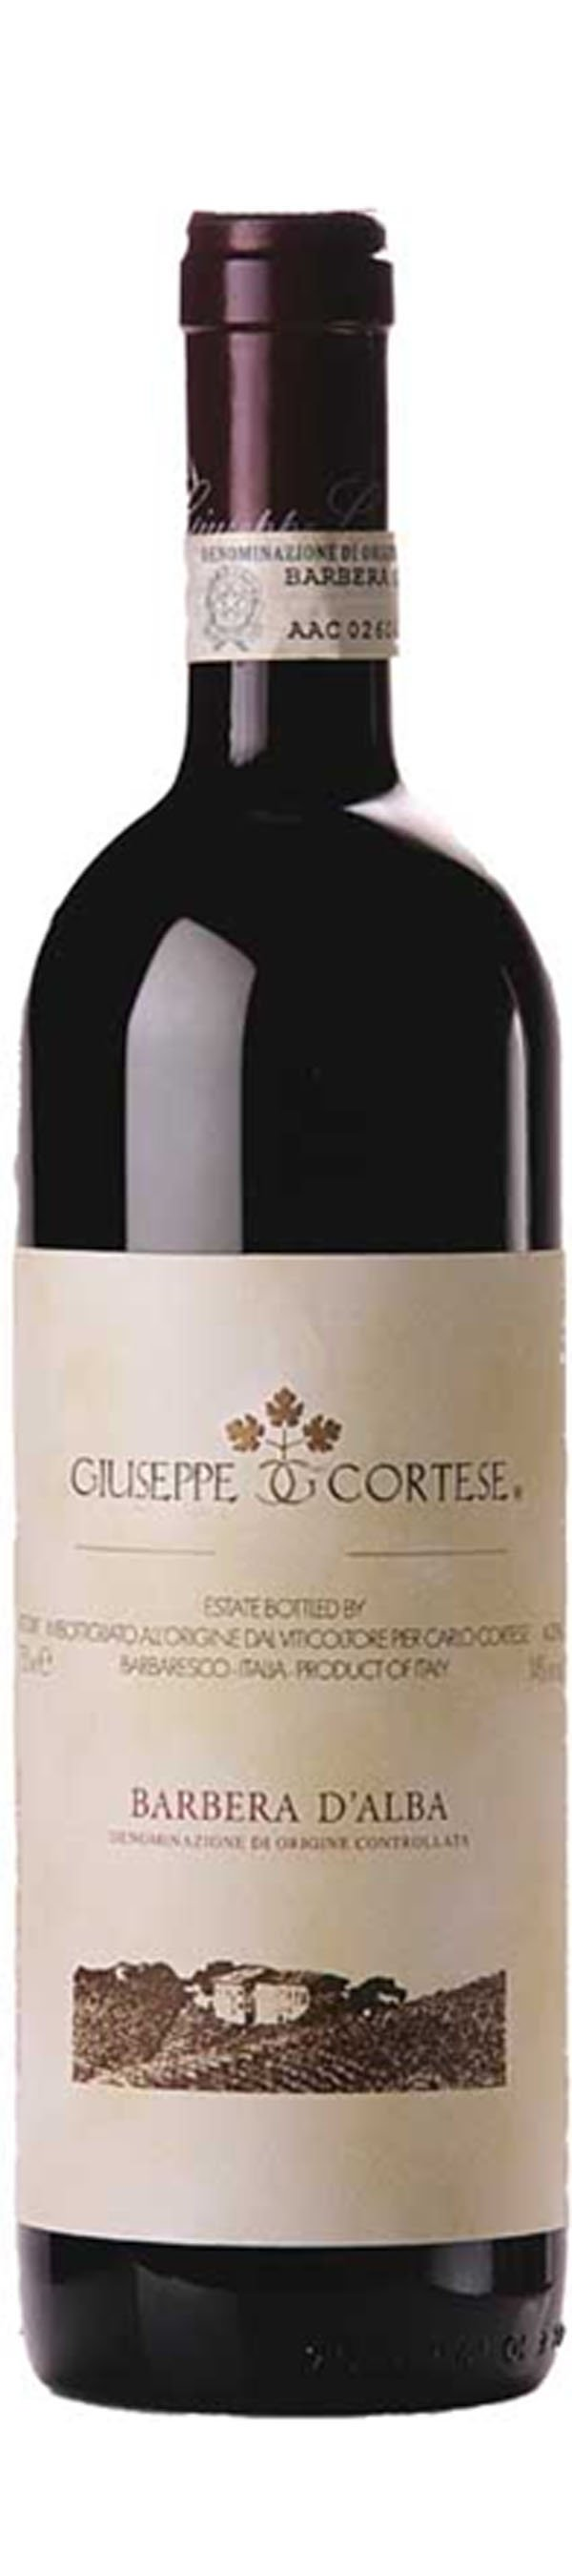 Giuseppe Cortese Barbaresco Rabaja Red 2014 750ml